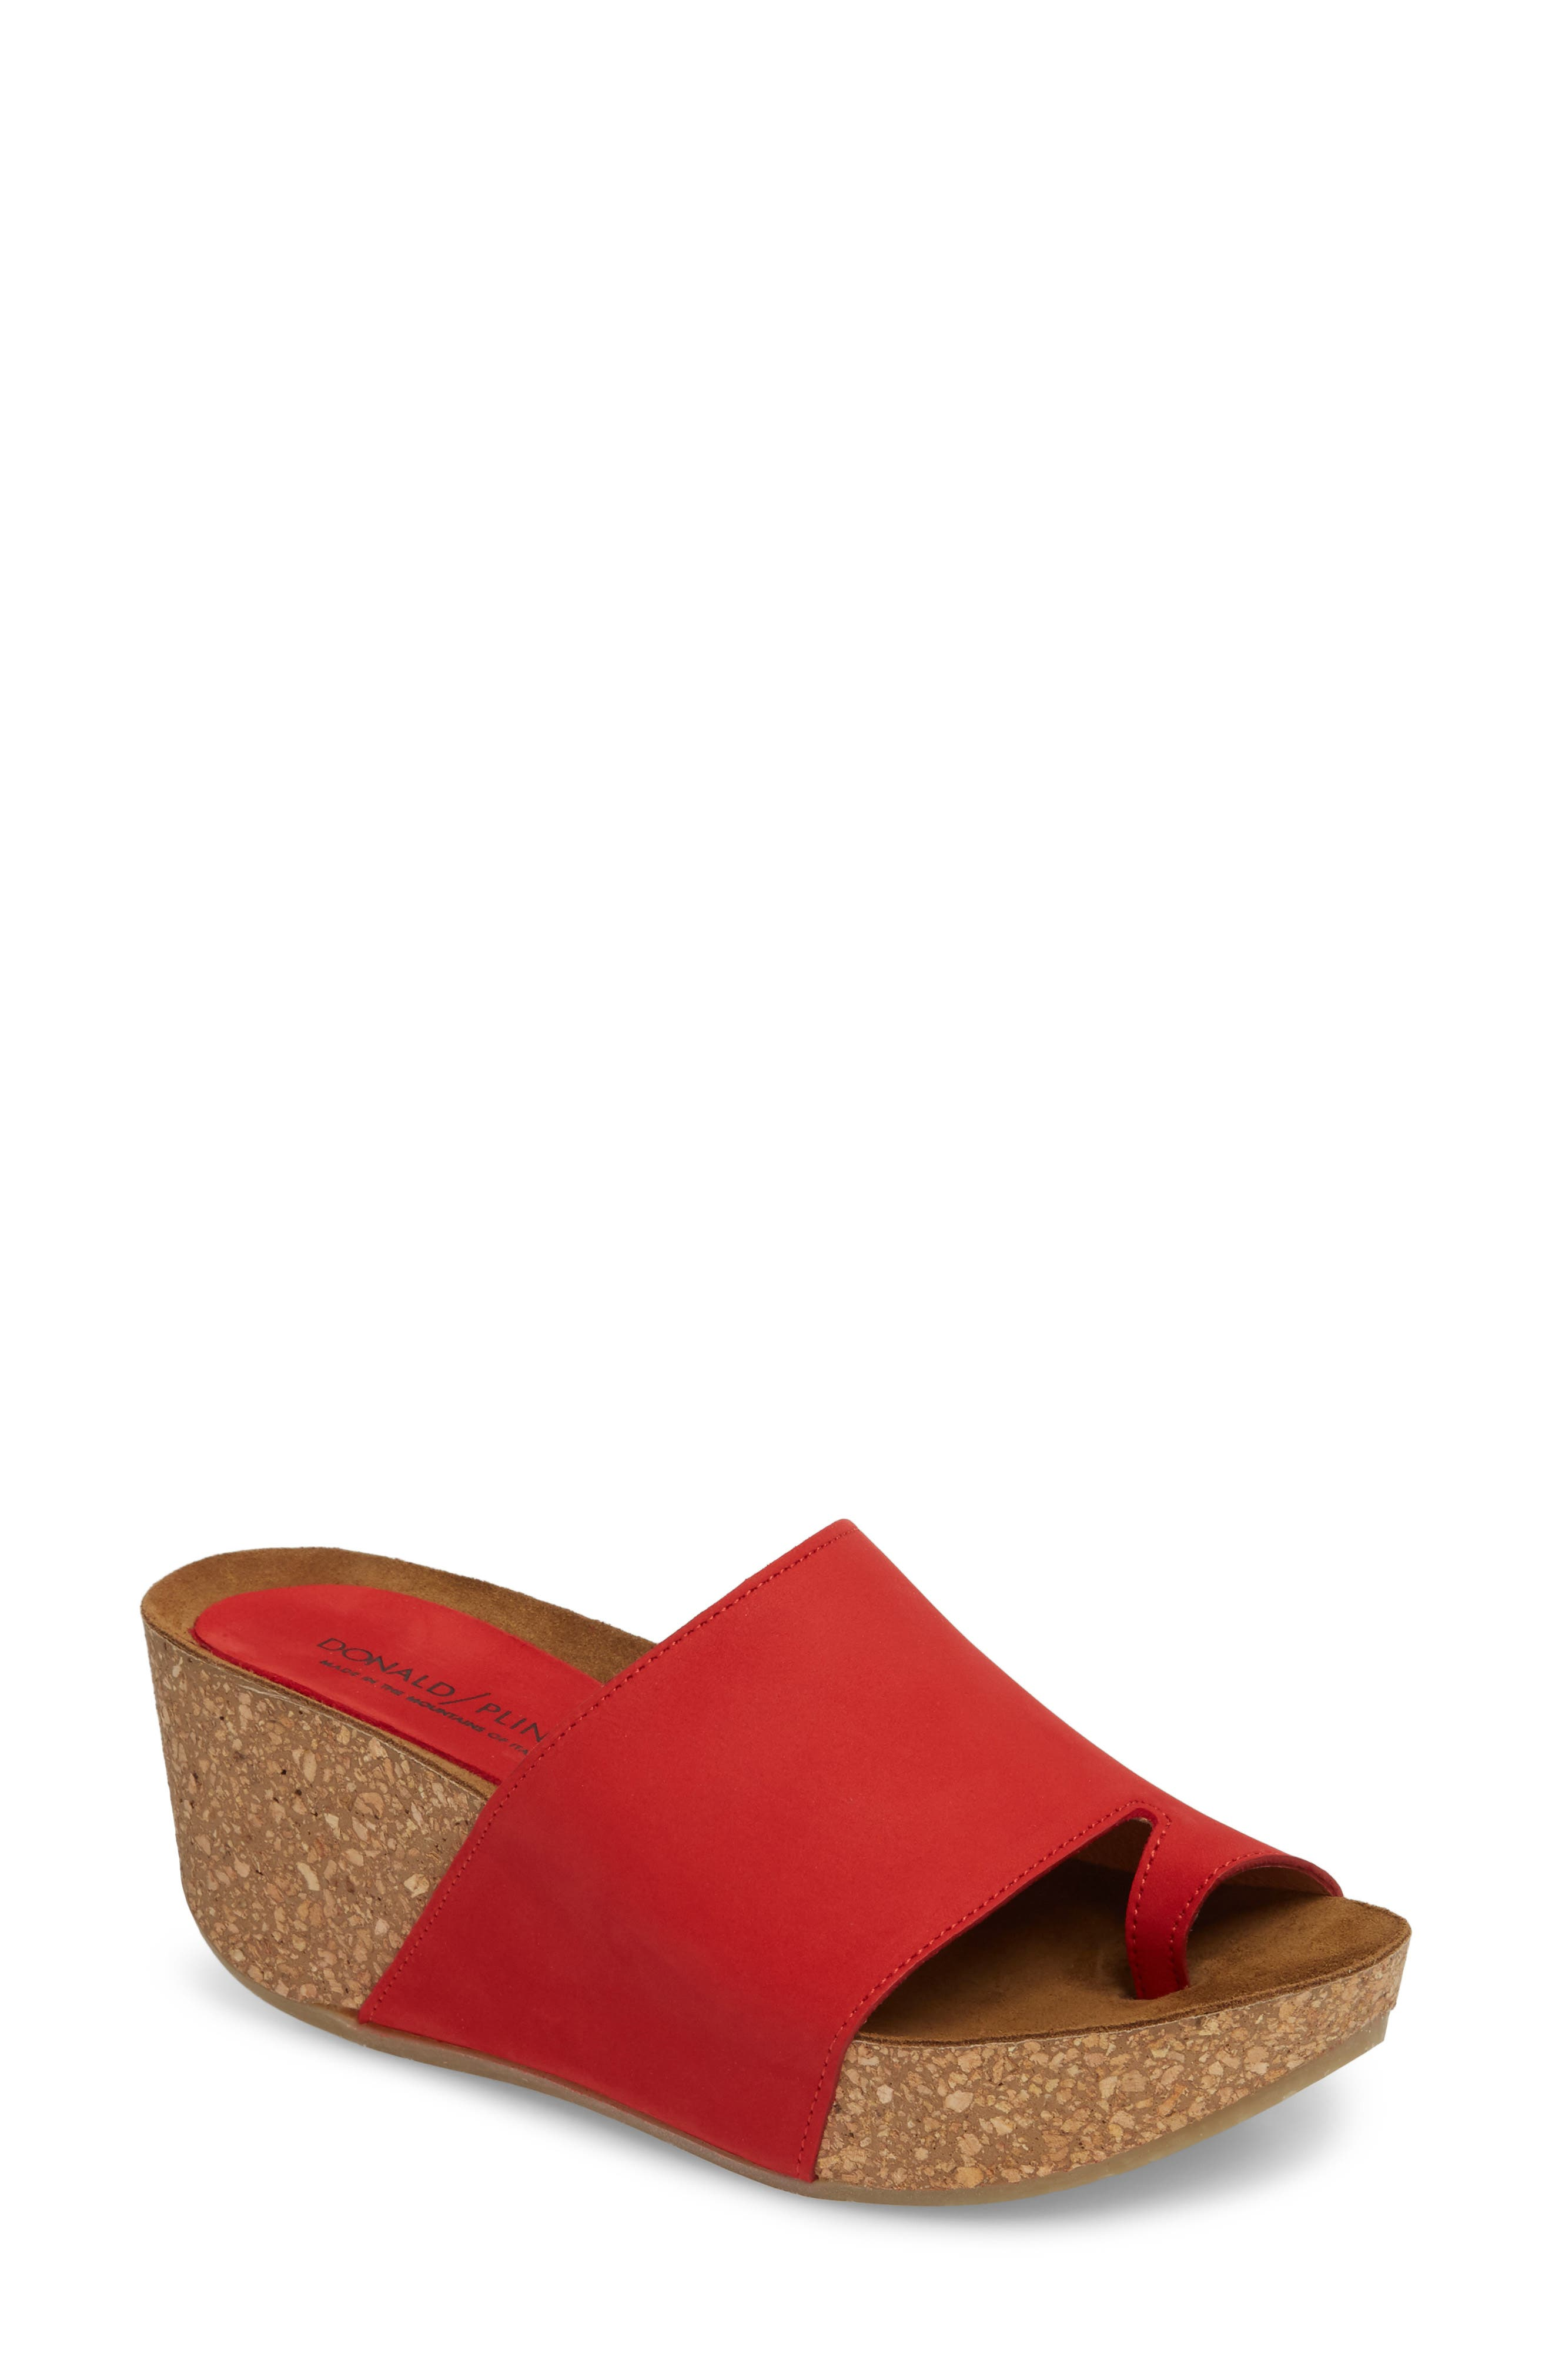 Donald J Pliner Ginie Platform Wedge Sandal,                             Main thumbnail 5, color,